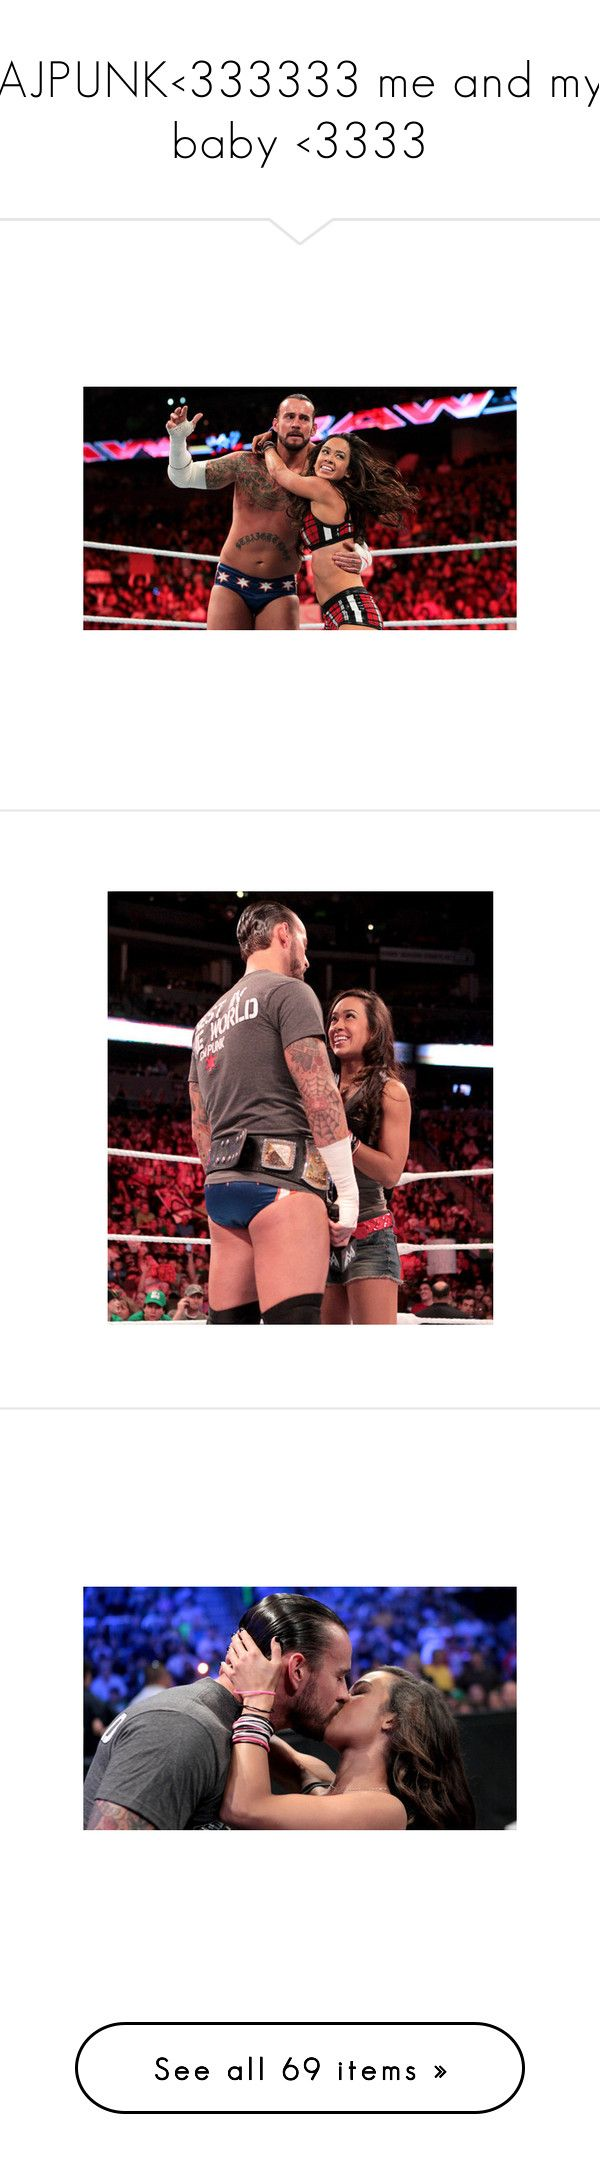 """AJPUNK<333333 me and my baby <3333"" by imblissedoff ❤ liked on Polyvore featuring wwe, pictures, cm punk, people, divas, wwe stars, accessories, home and home decor"